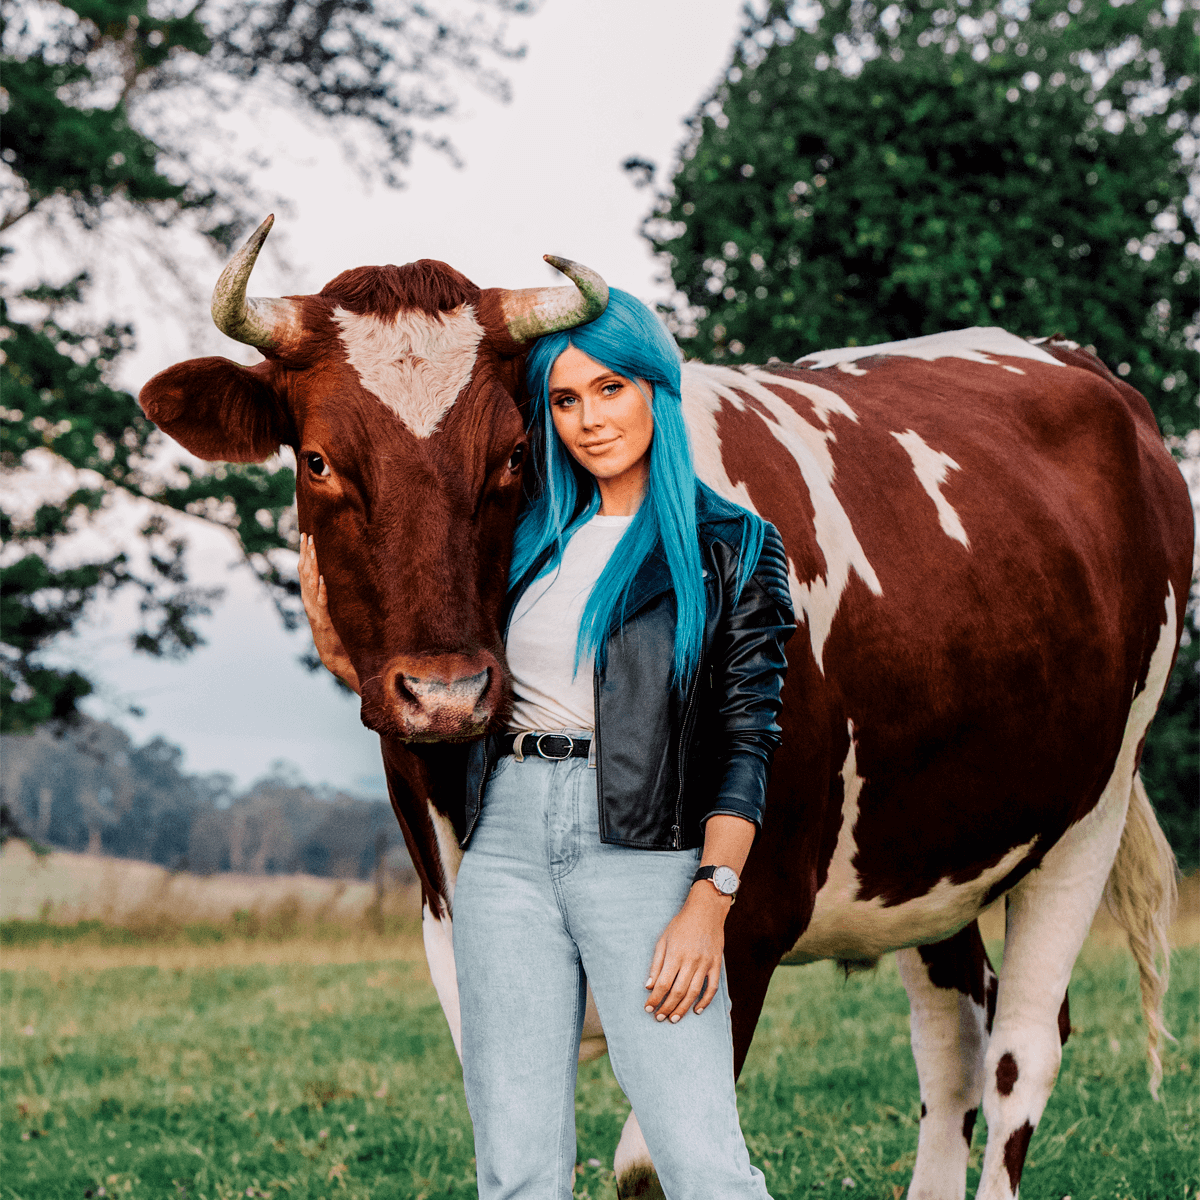 Dara Hayes, AKA DJ Tigerlily, with rescue cow (image by Noah Hannibal)